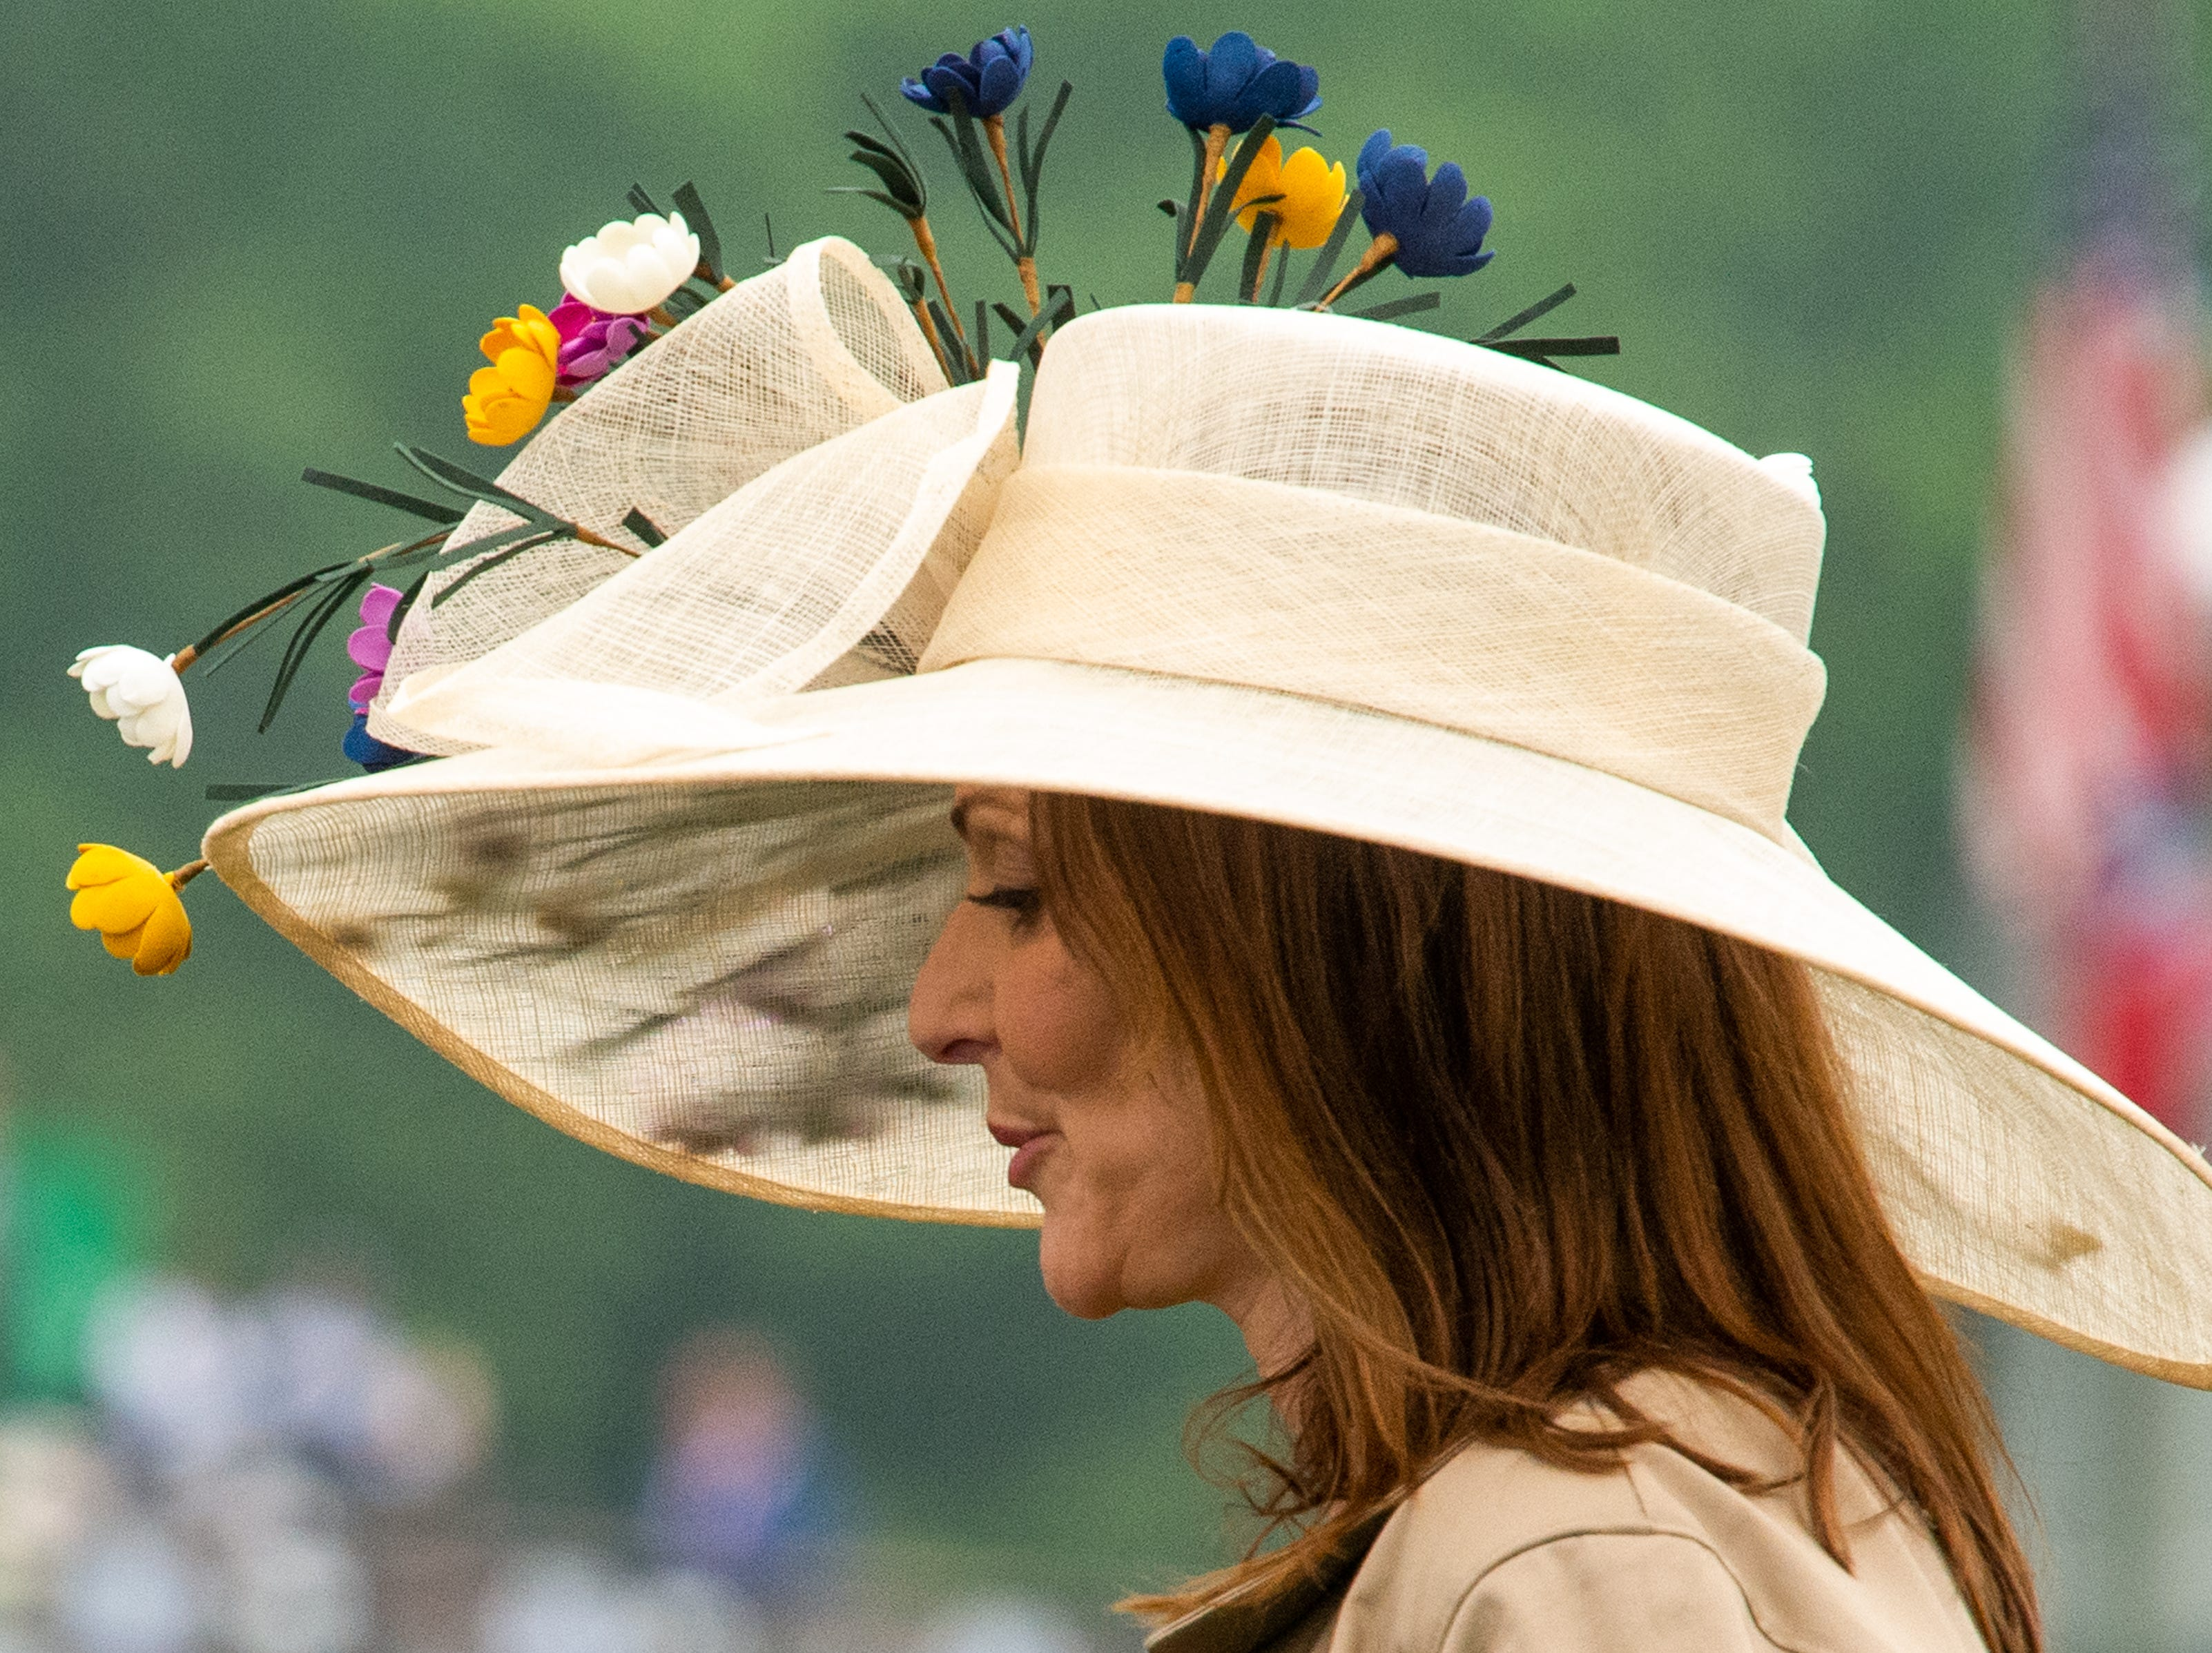 A fan walks with a floral hat during the Iroquois Steeplechase at Percy Warner Park Saturday, May 11, 2019, in Nashville, Tenn.